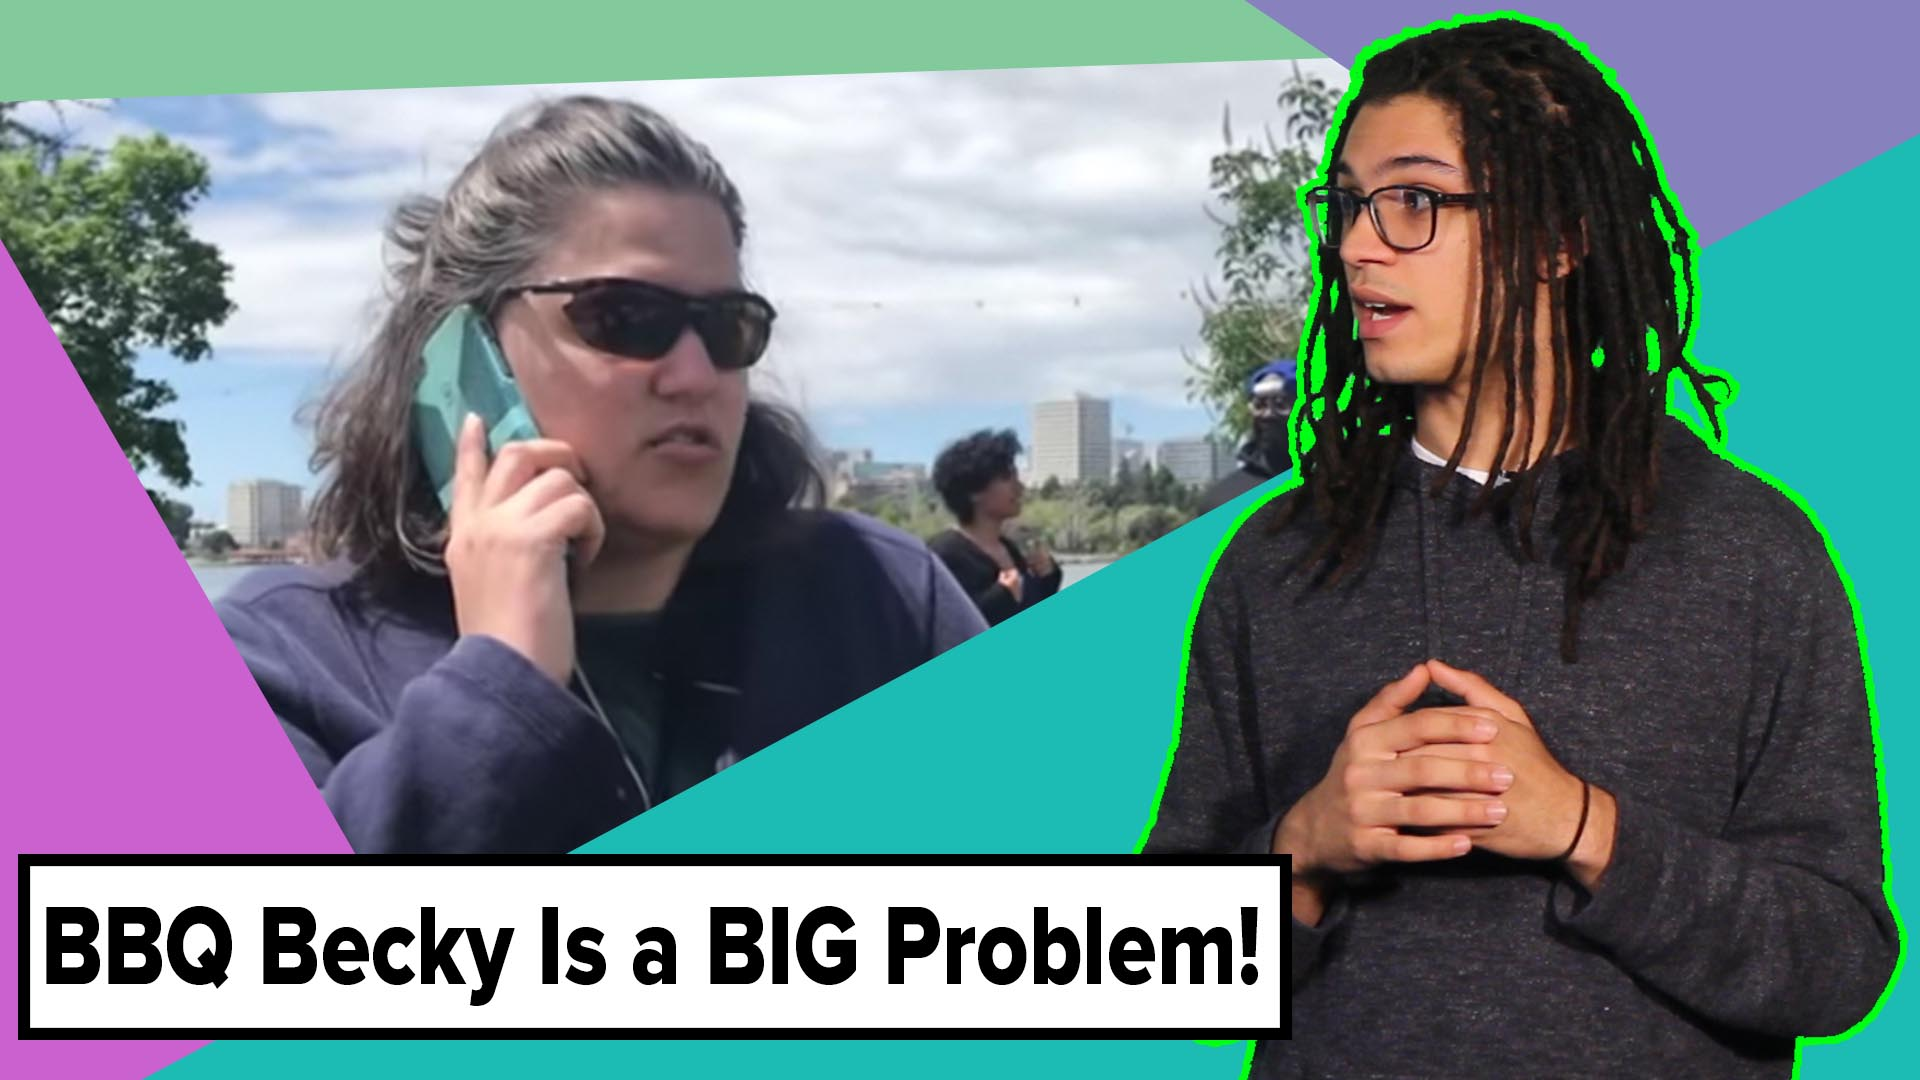 Why BBQ Becky Is a Big Problem